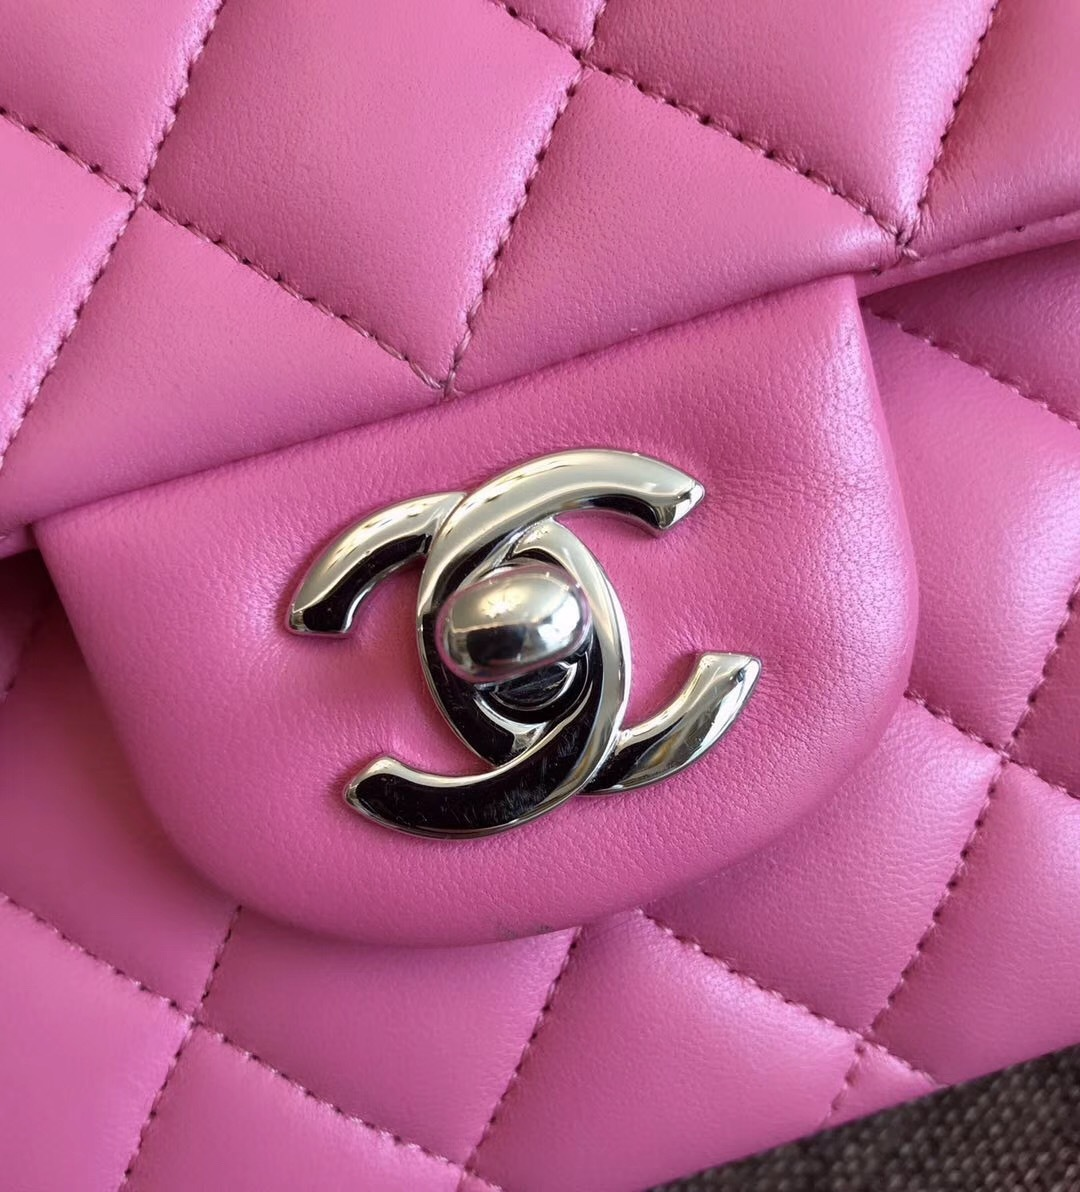 BRAND NEW AUTHENTIC CHANEL 2019 PINK QUILTED LAMBSKIN MEDIUM DOUBLE FLAP BAG SHW